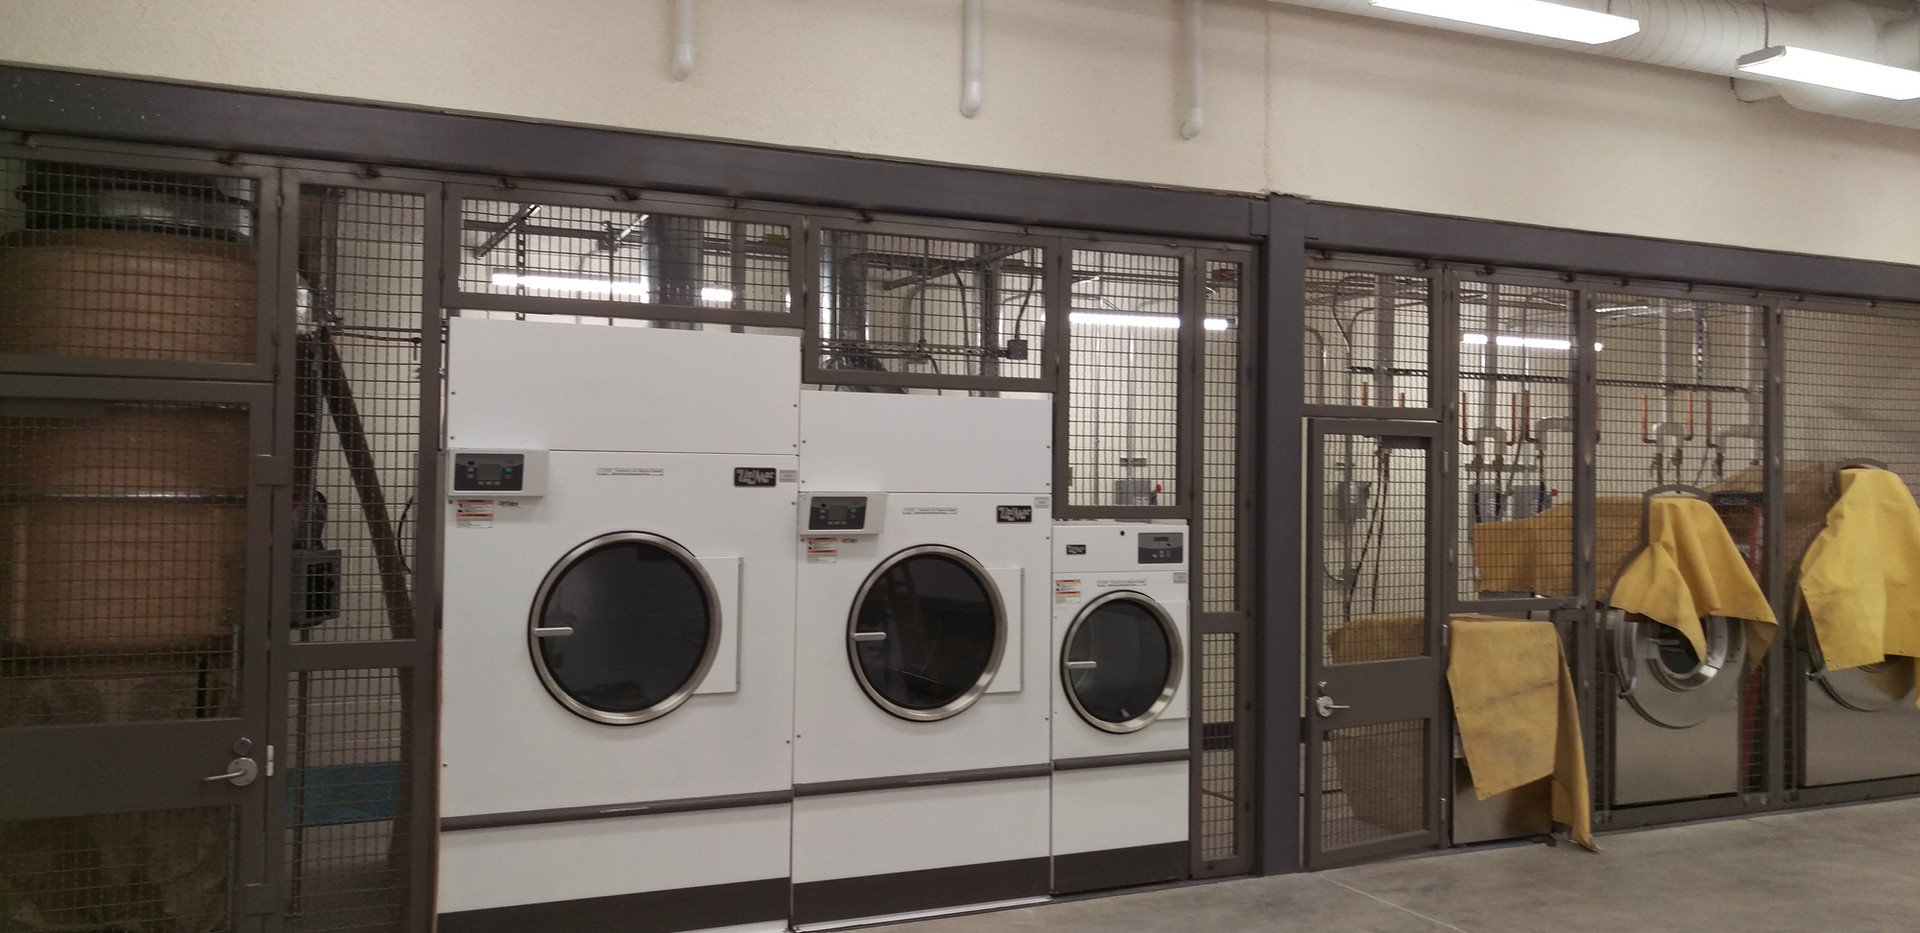 Laundry Equipment Cage